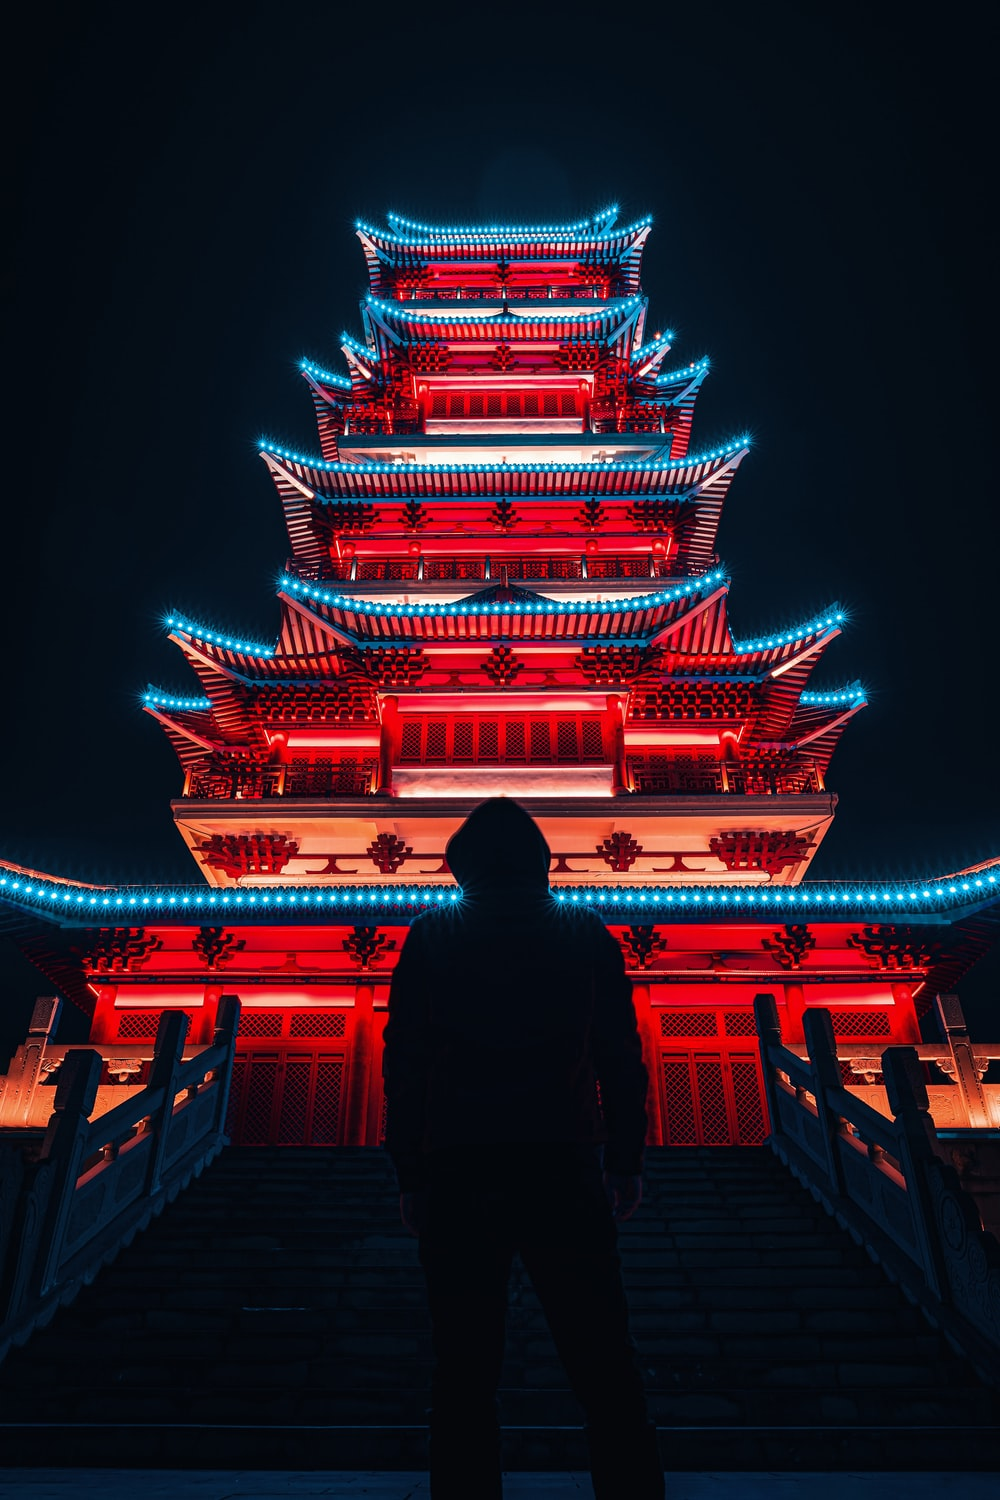 woman in black long sleeve shirt standing in front of temple during nighttime